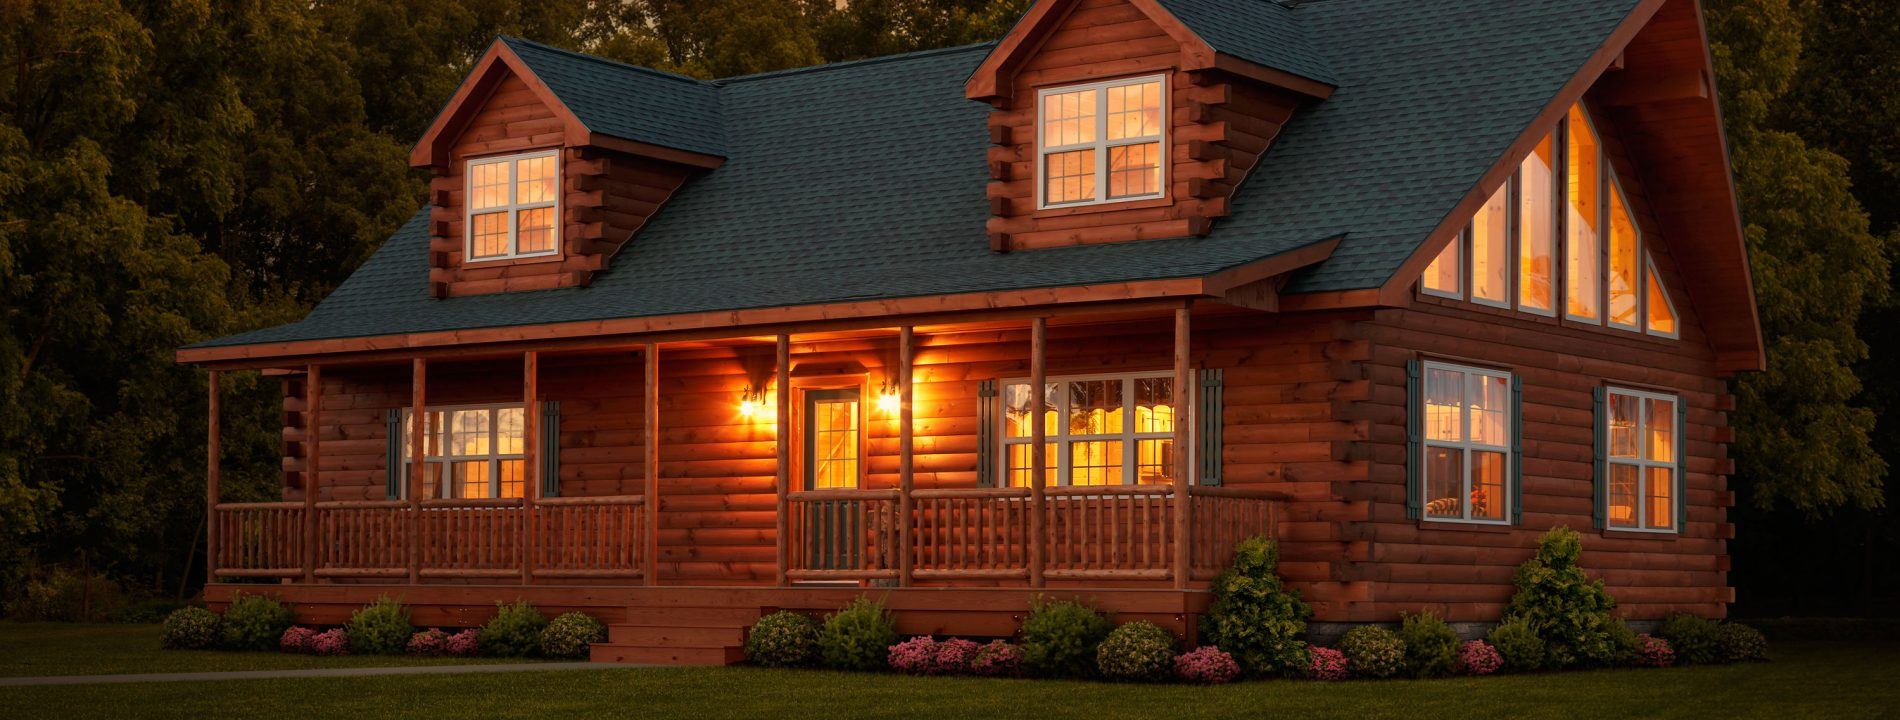 amish log cabins to live in